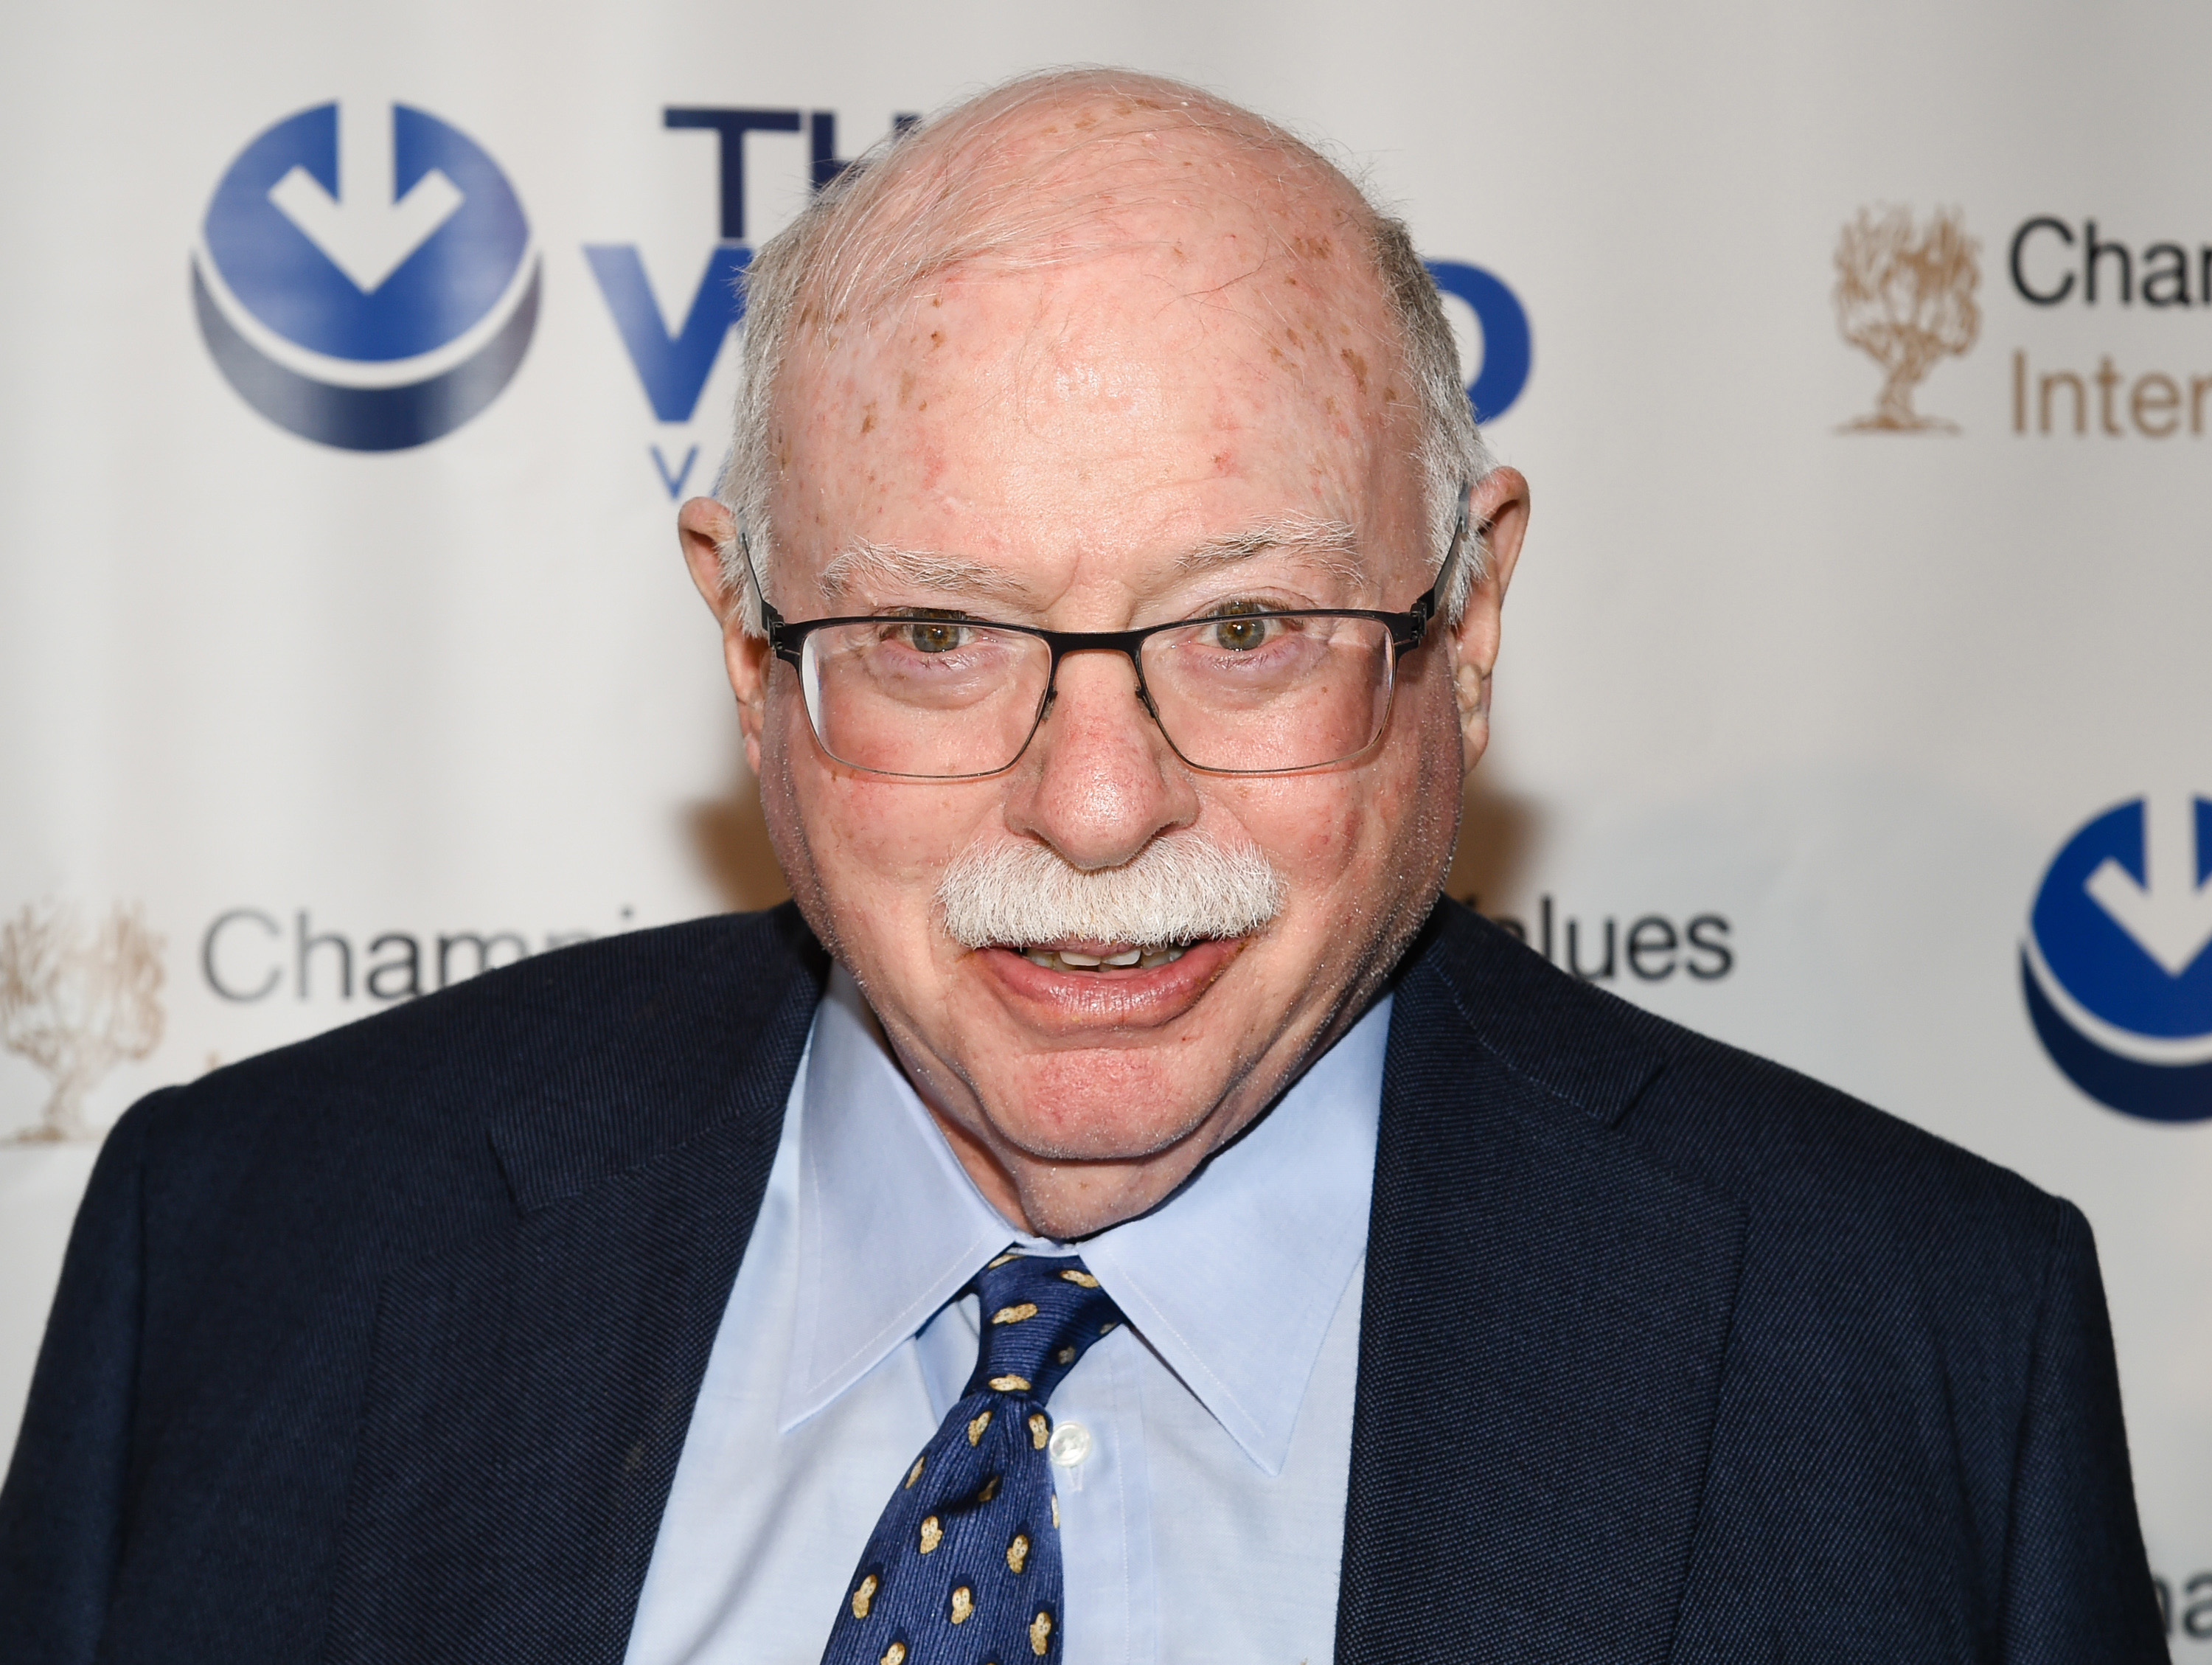 washingtonpost.com - Lila Corwin Berman - Michael Steinhardt and the takeover of Jewish philanthropy by mega-donors